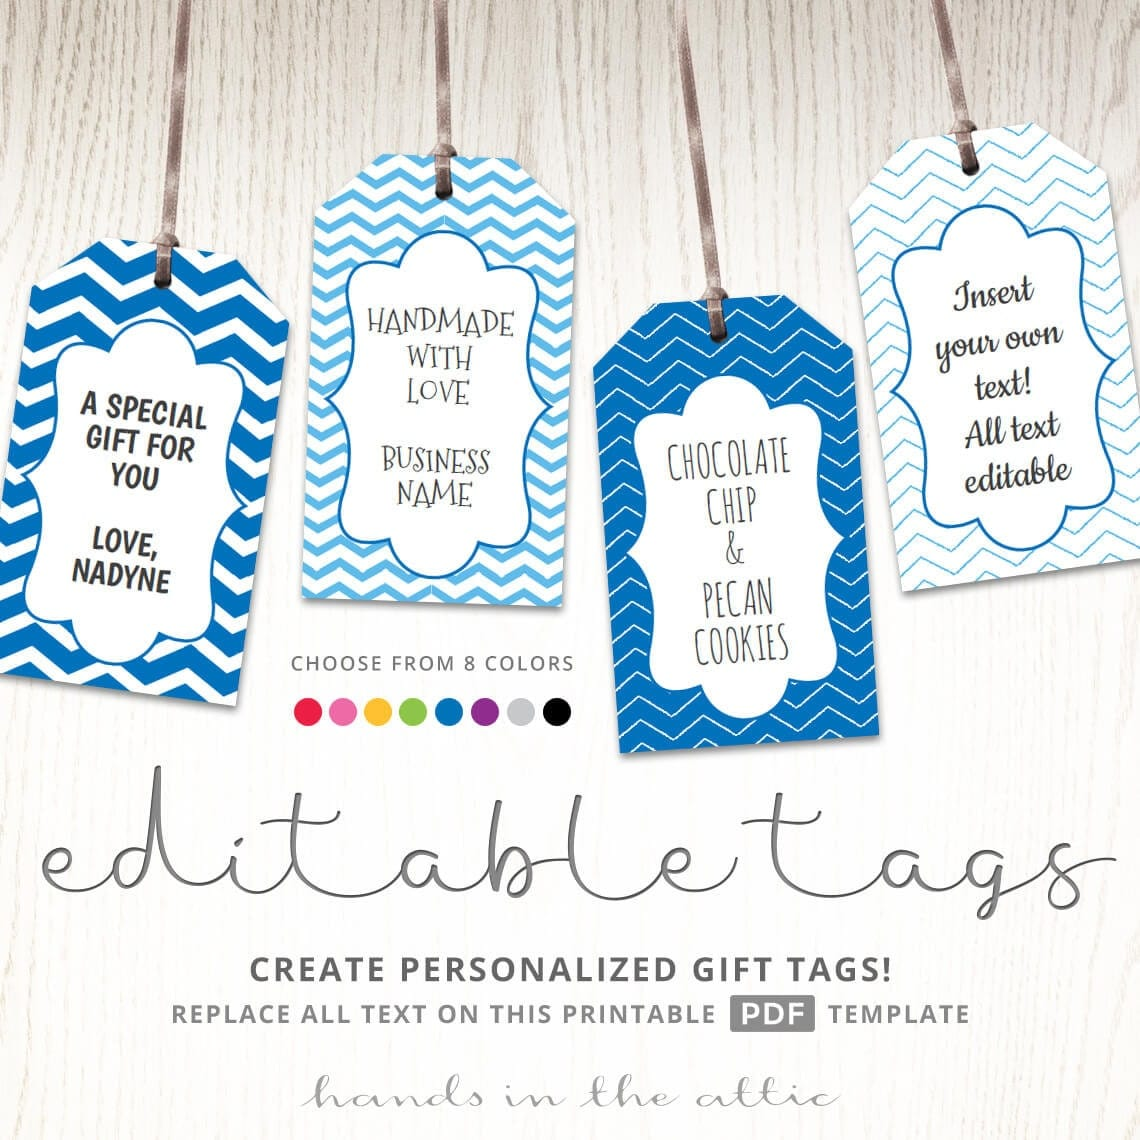 Editable gift tags gift tag template text editable chevron for Goodie bag tag template